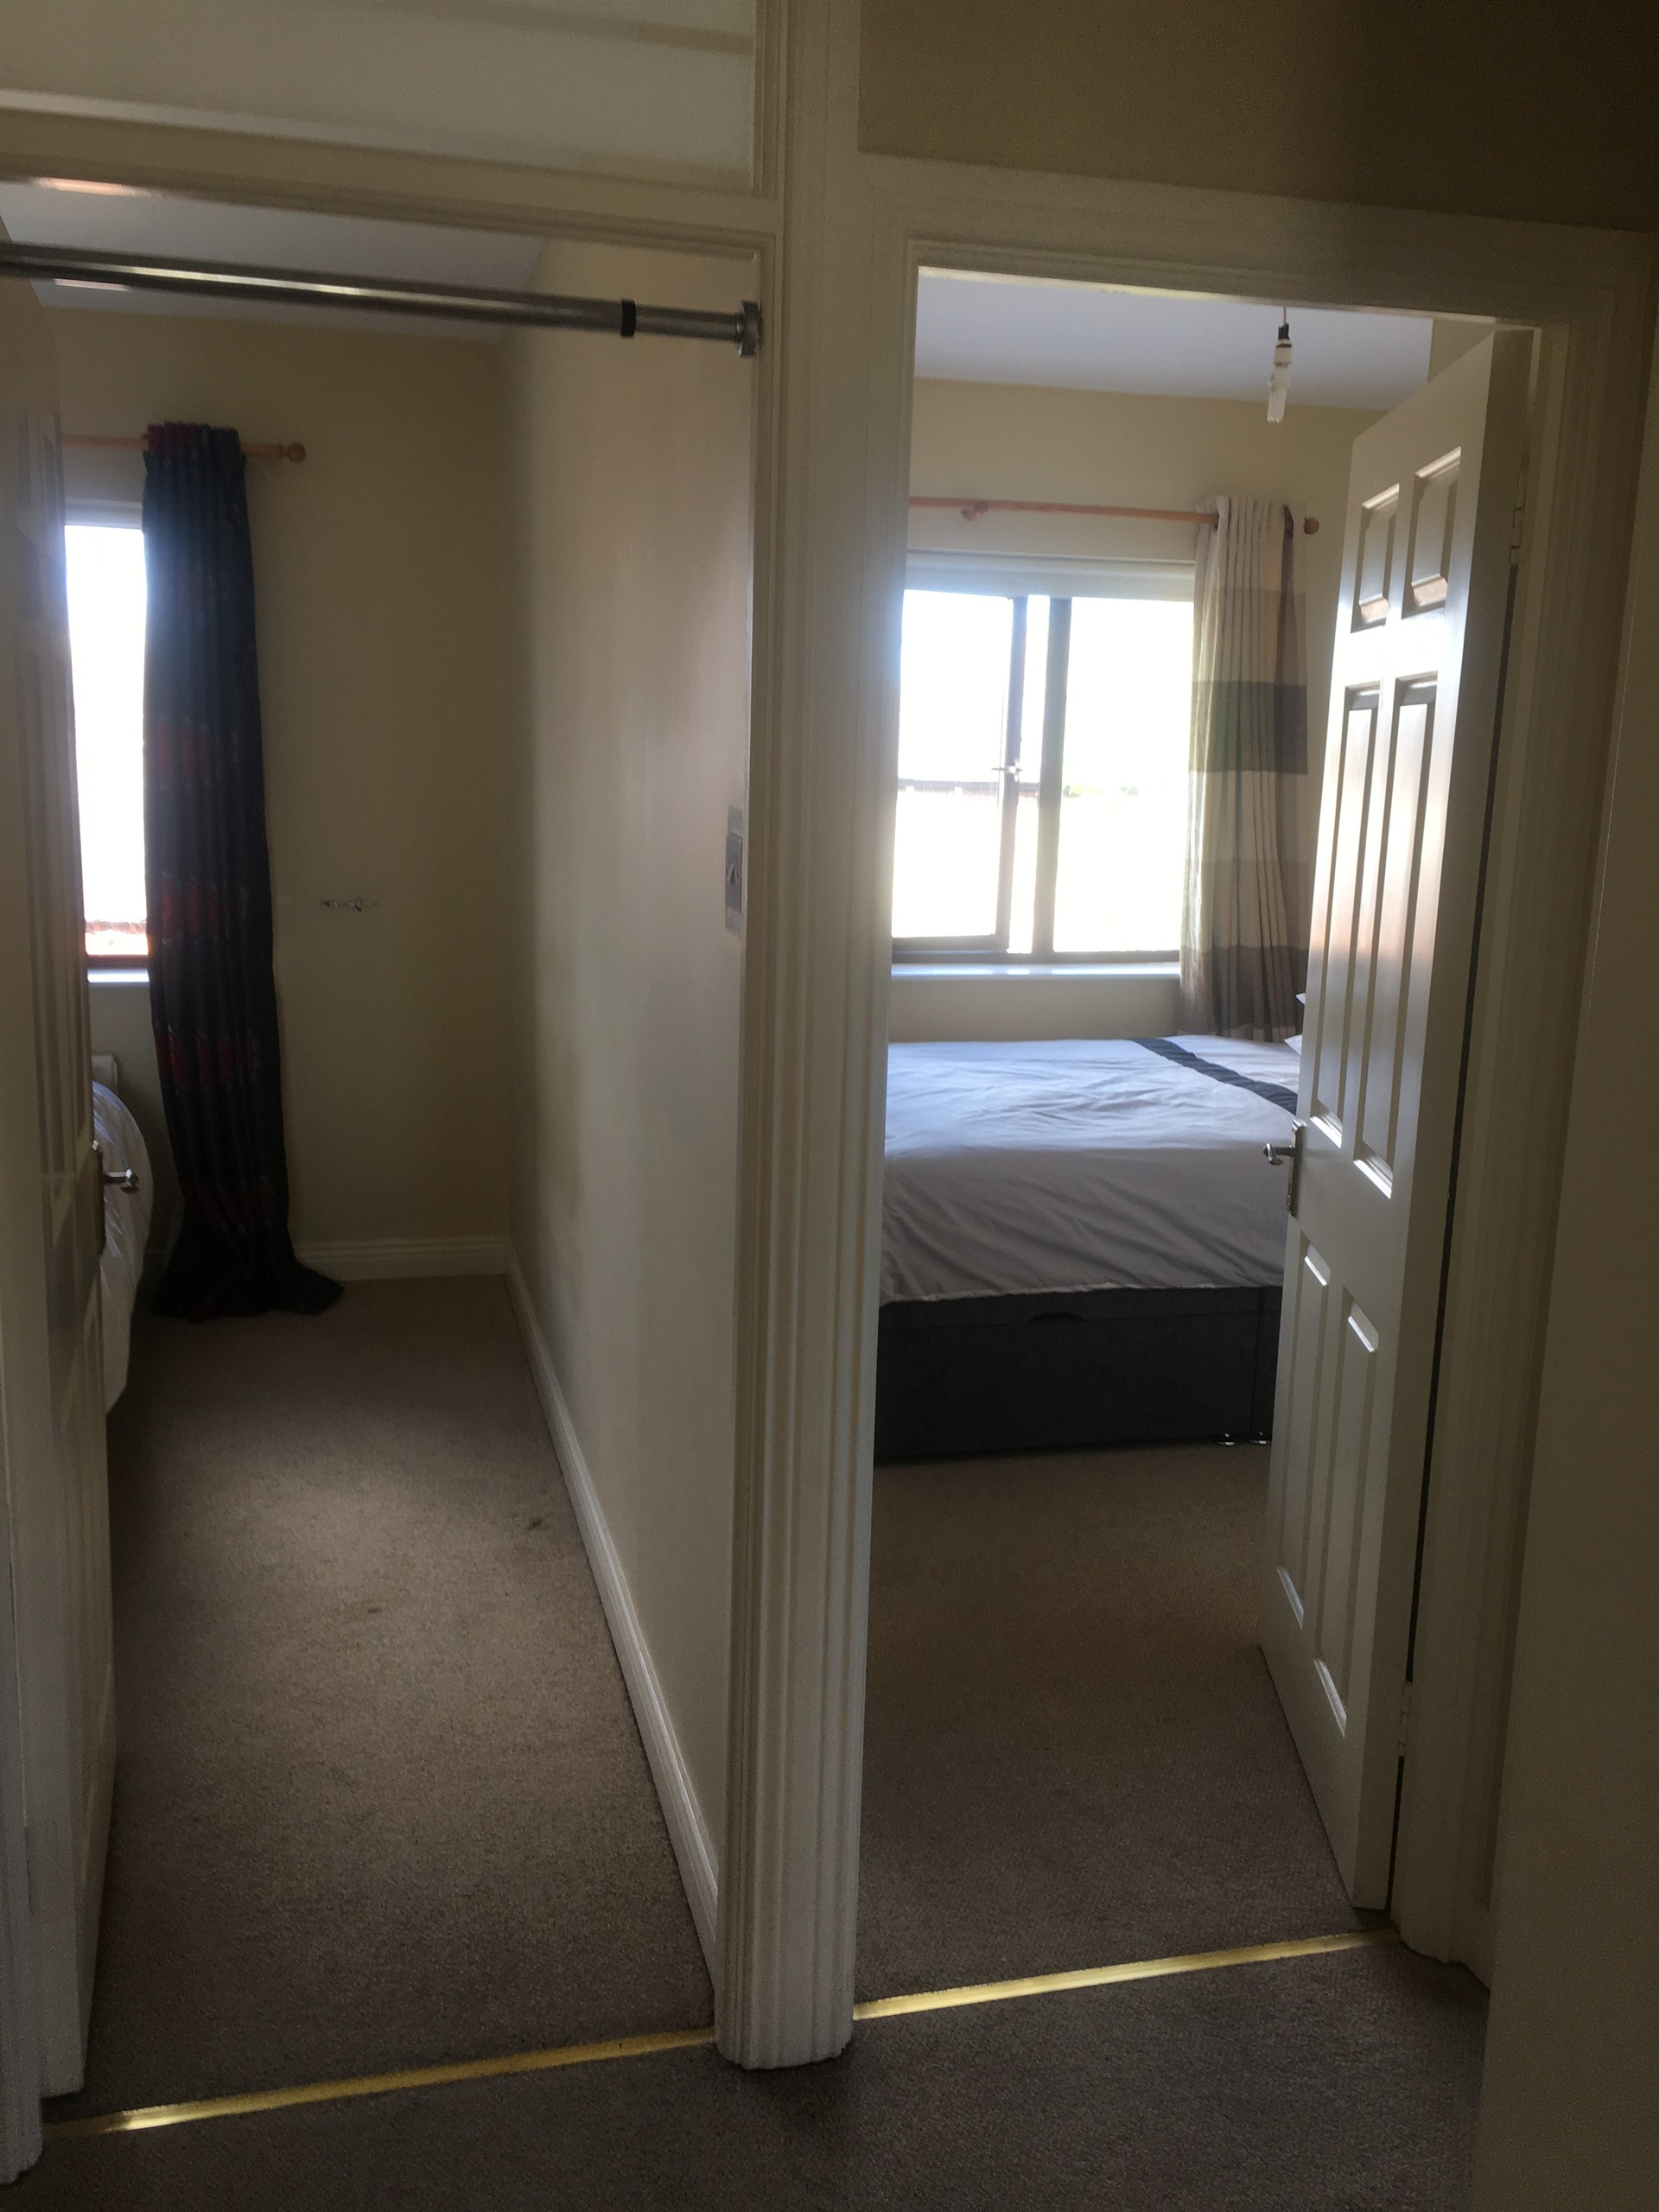 2 Beautiful large double bed rooms